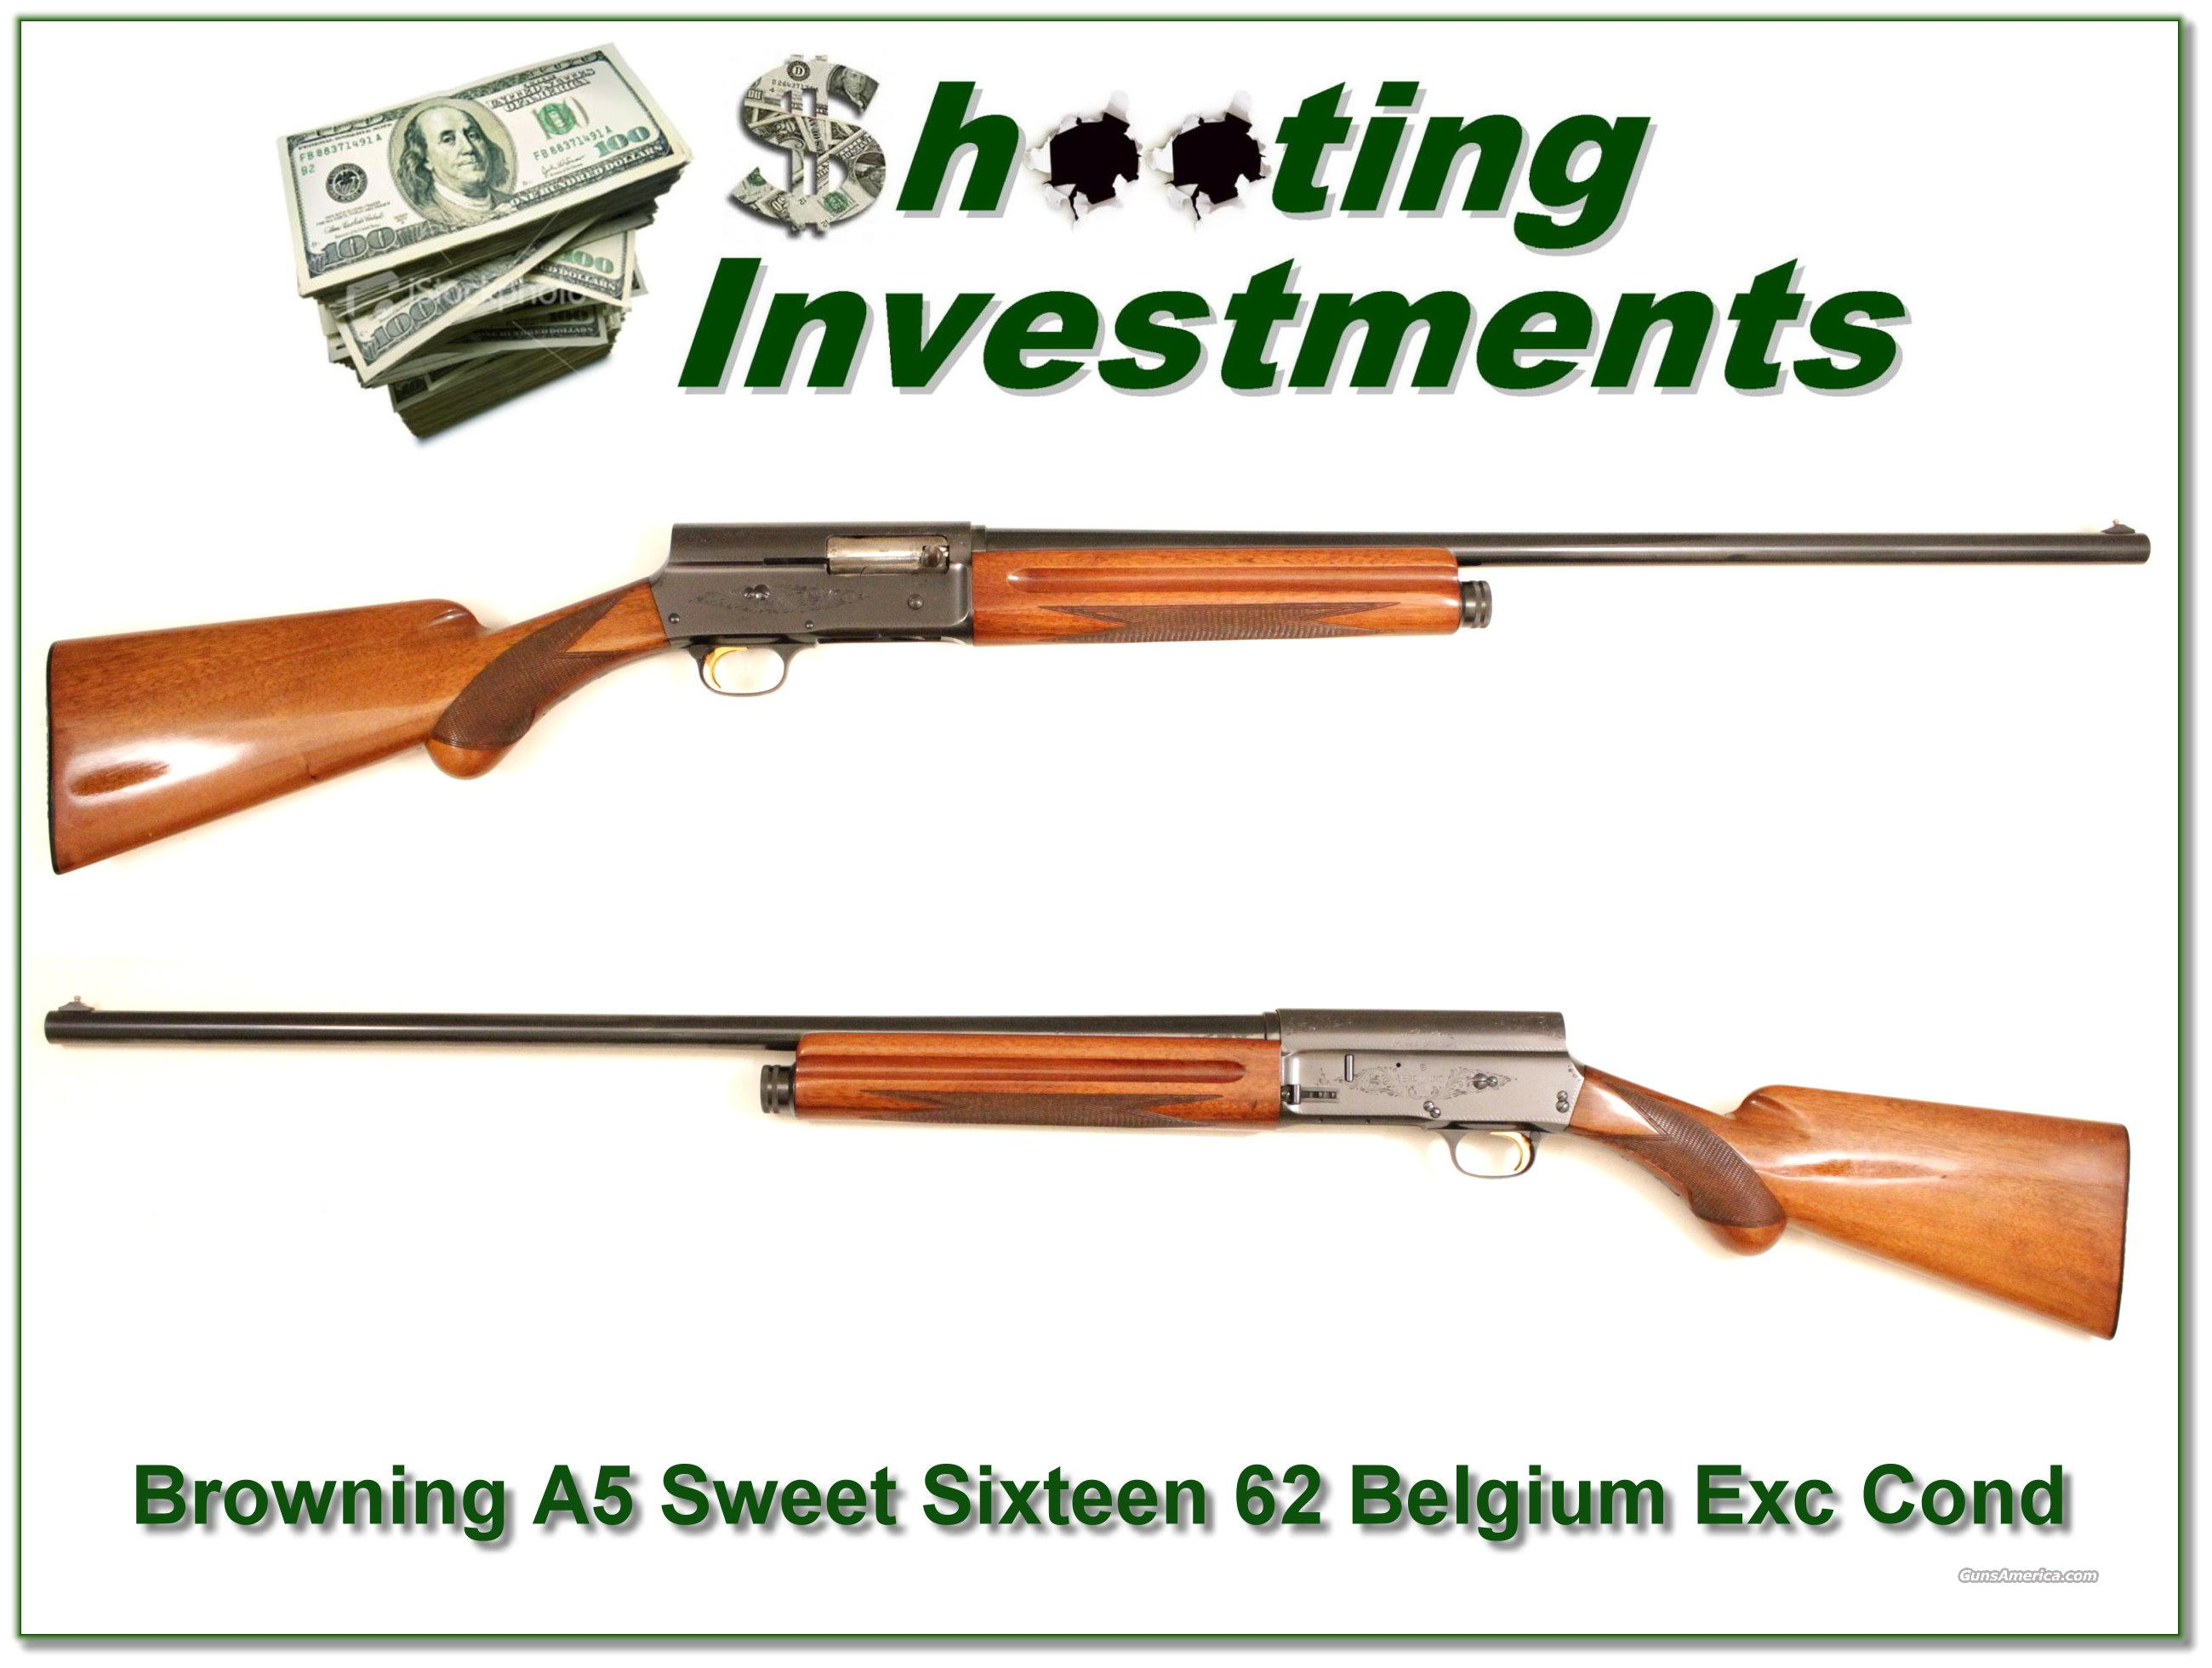 Browning A5 Sweet Sixteen 62 Belgium Exc Cond  Guns > Shotguns > Browning Shotguns > Autoloaders > Hunting